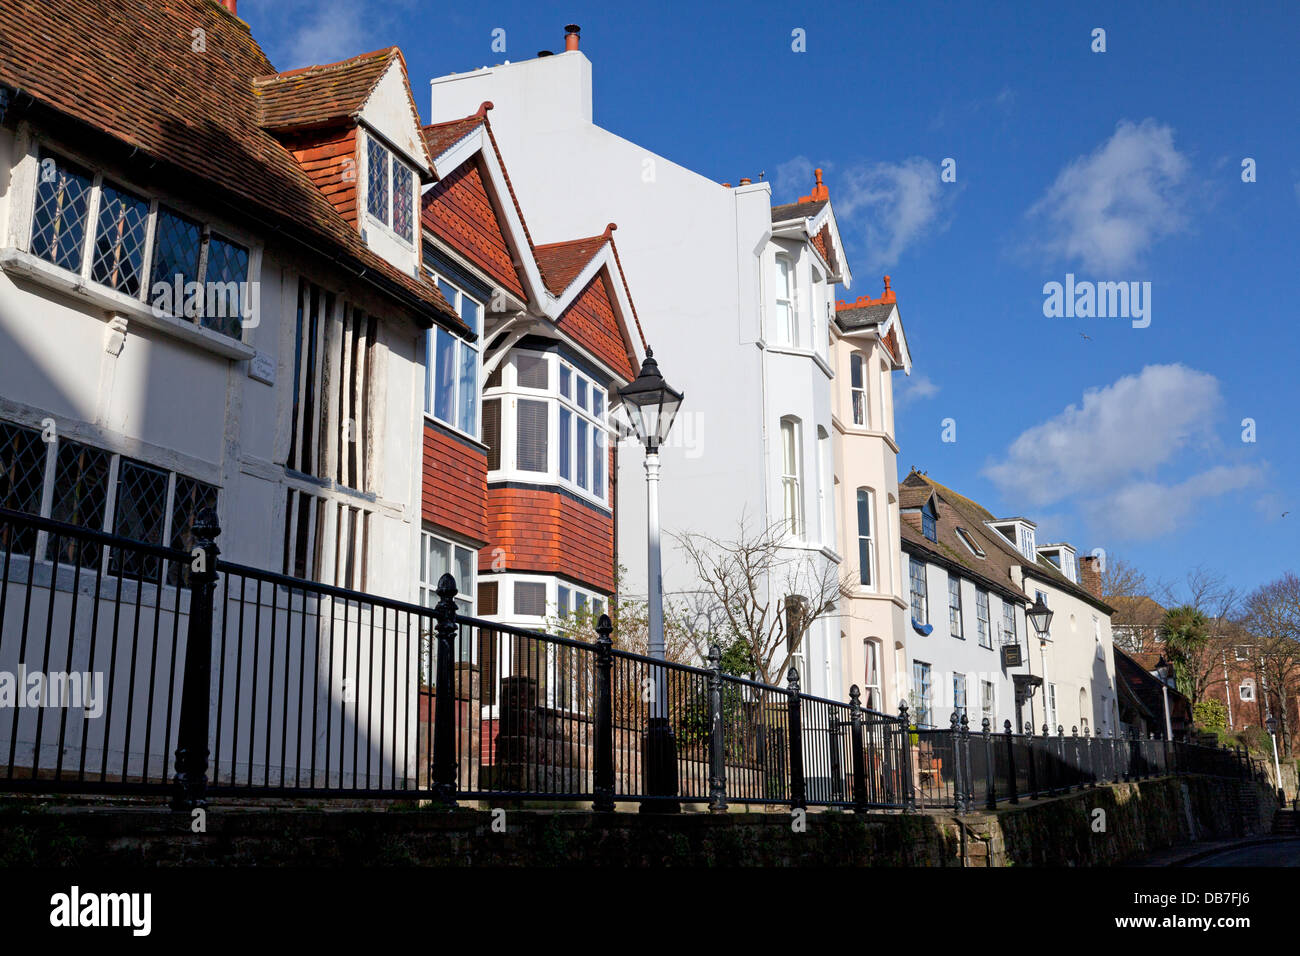 Row of houses in Hastings Old Town, East Sussex - Stock Image